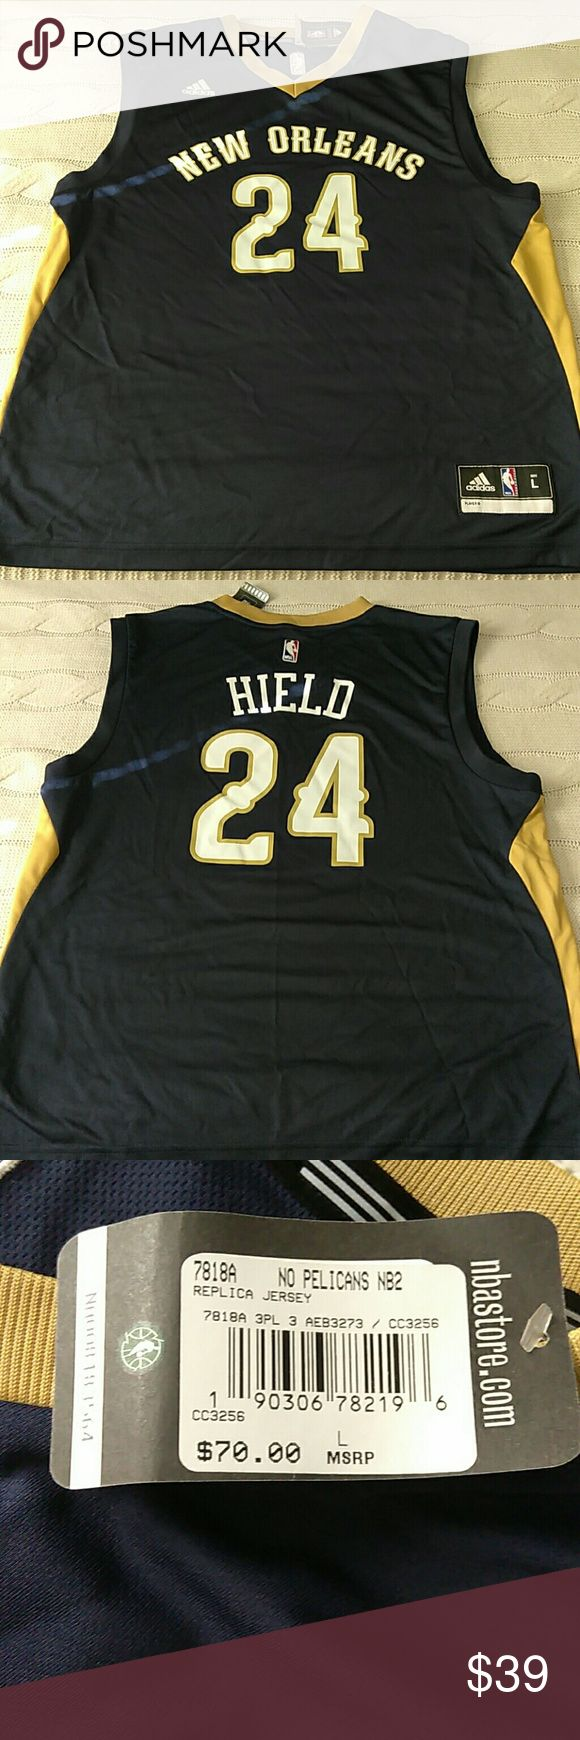 New Adidas NBA Store New Orleans 24 Hield Jersey New Adidas NBA Store New Orleans 24 Hield Replica Jersey adidas Shirts